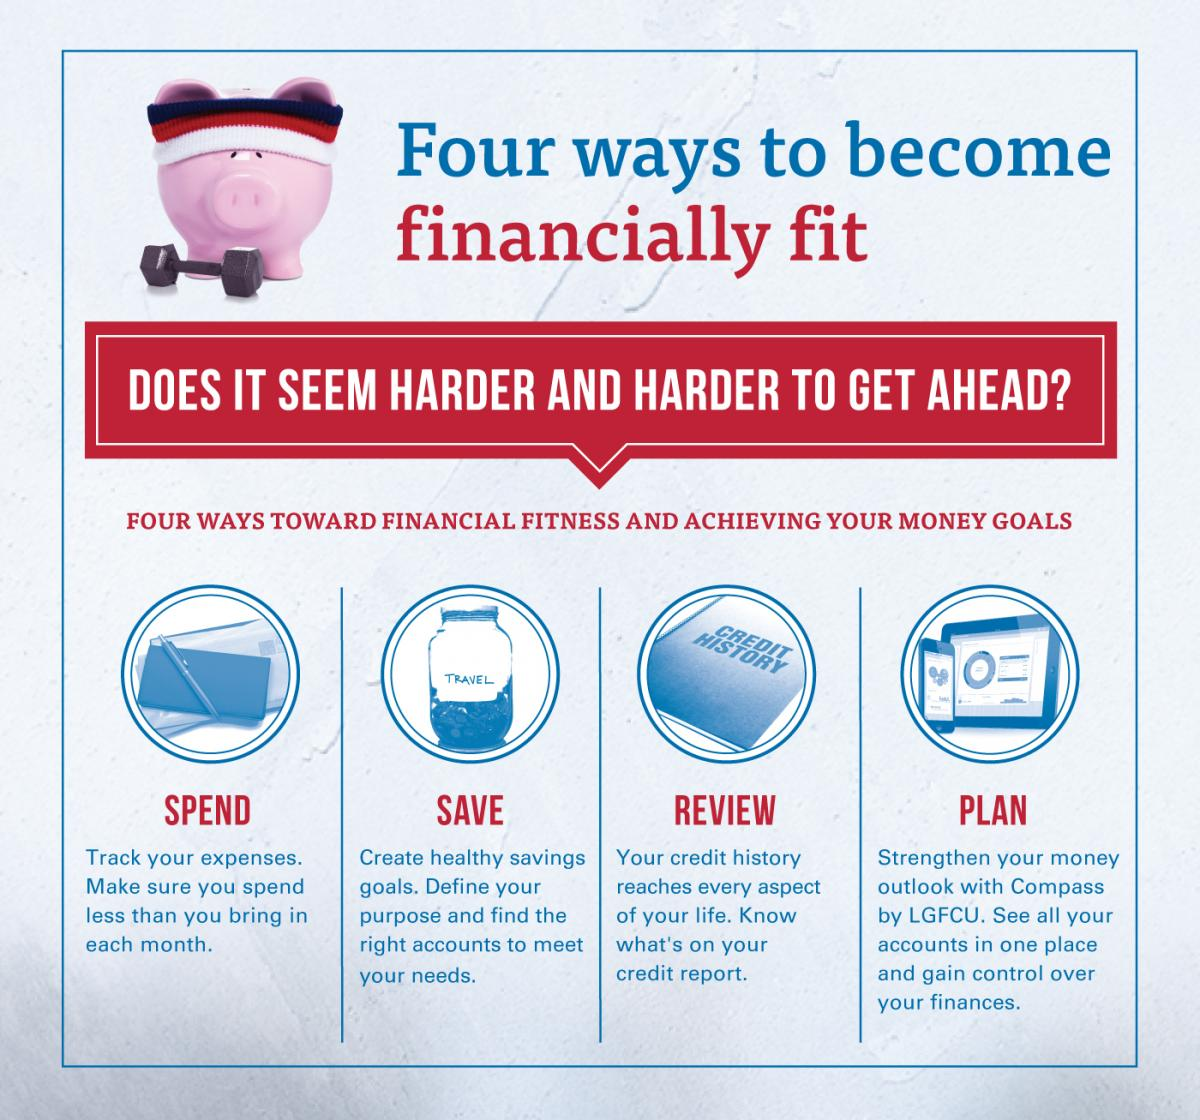 Four ways to become financially fit. Does it seem harder and harder to get ahead? Four ways toward financial fitness and achieving your money goals. Spend. Track your expenses. Make sure you spend less than you bring in each month. Save. Create healthy savings goals. Define your purpose and find the right accounts to meet your needs. Review. Your credit history reaches every aspect of your life. Know what's on your credit report. Plan. Strengthen your money outlook with Compass by LGFCU. See all your accounts in one place and gain control over your finances.